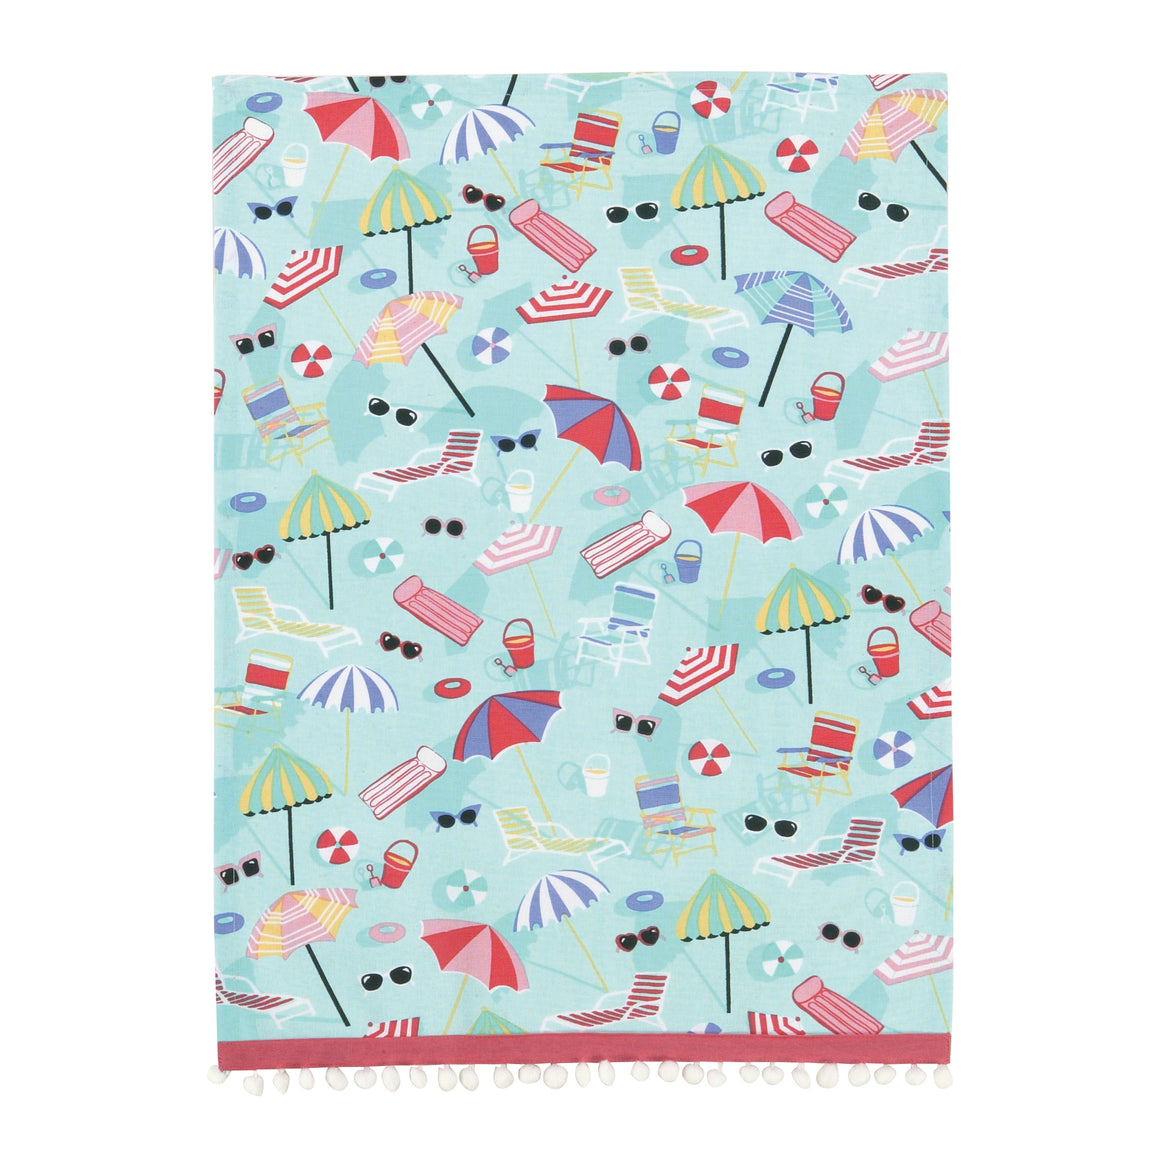 SPF Summer Fun Kitchen Towel - The Preppy Bunny